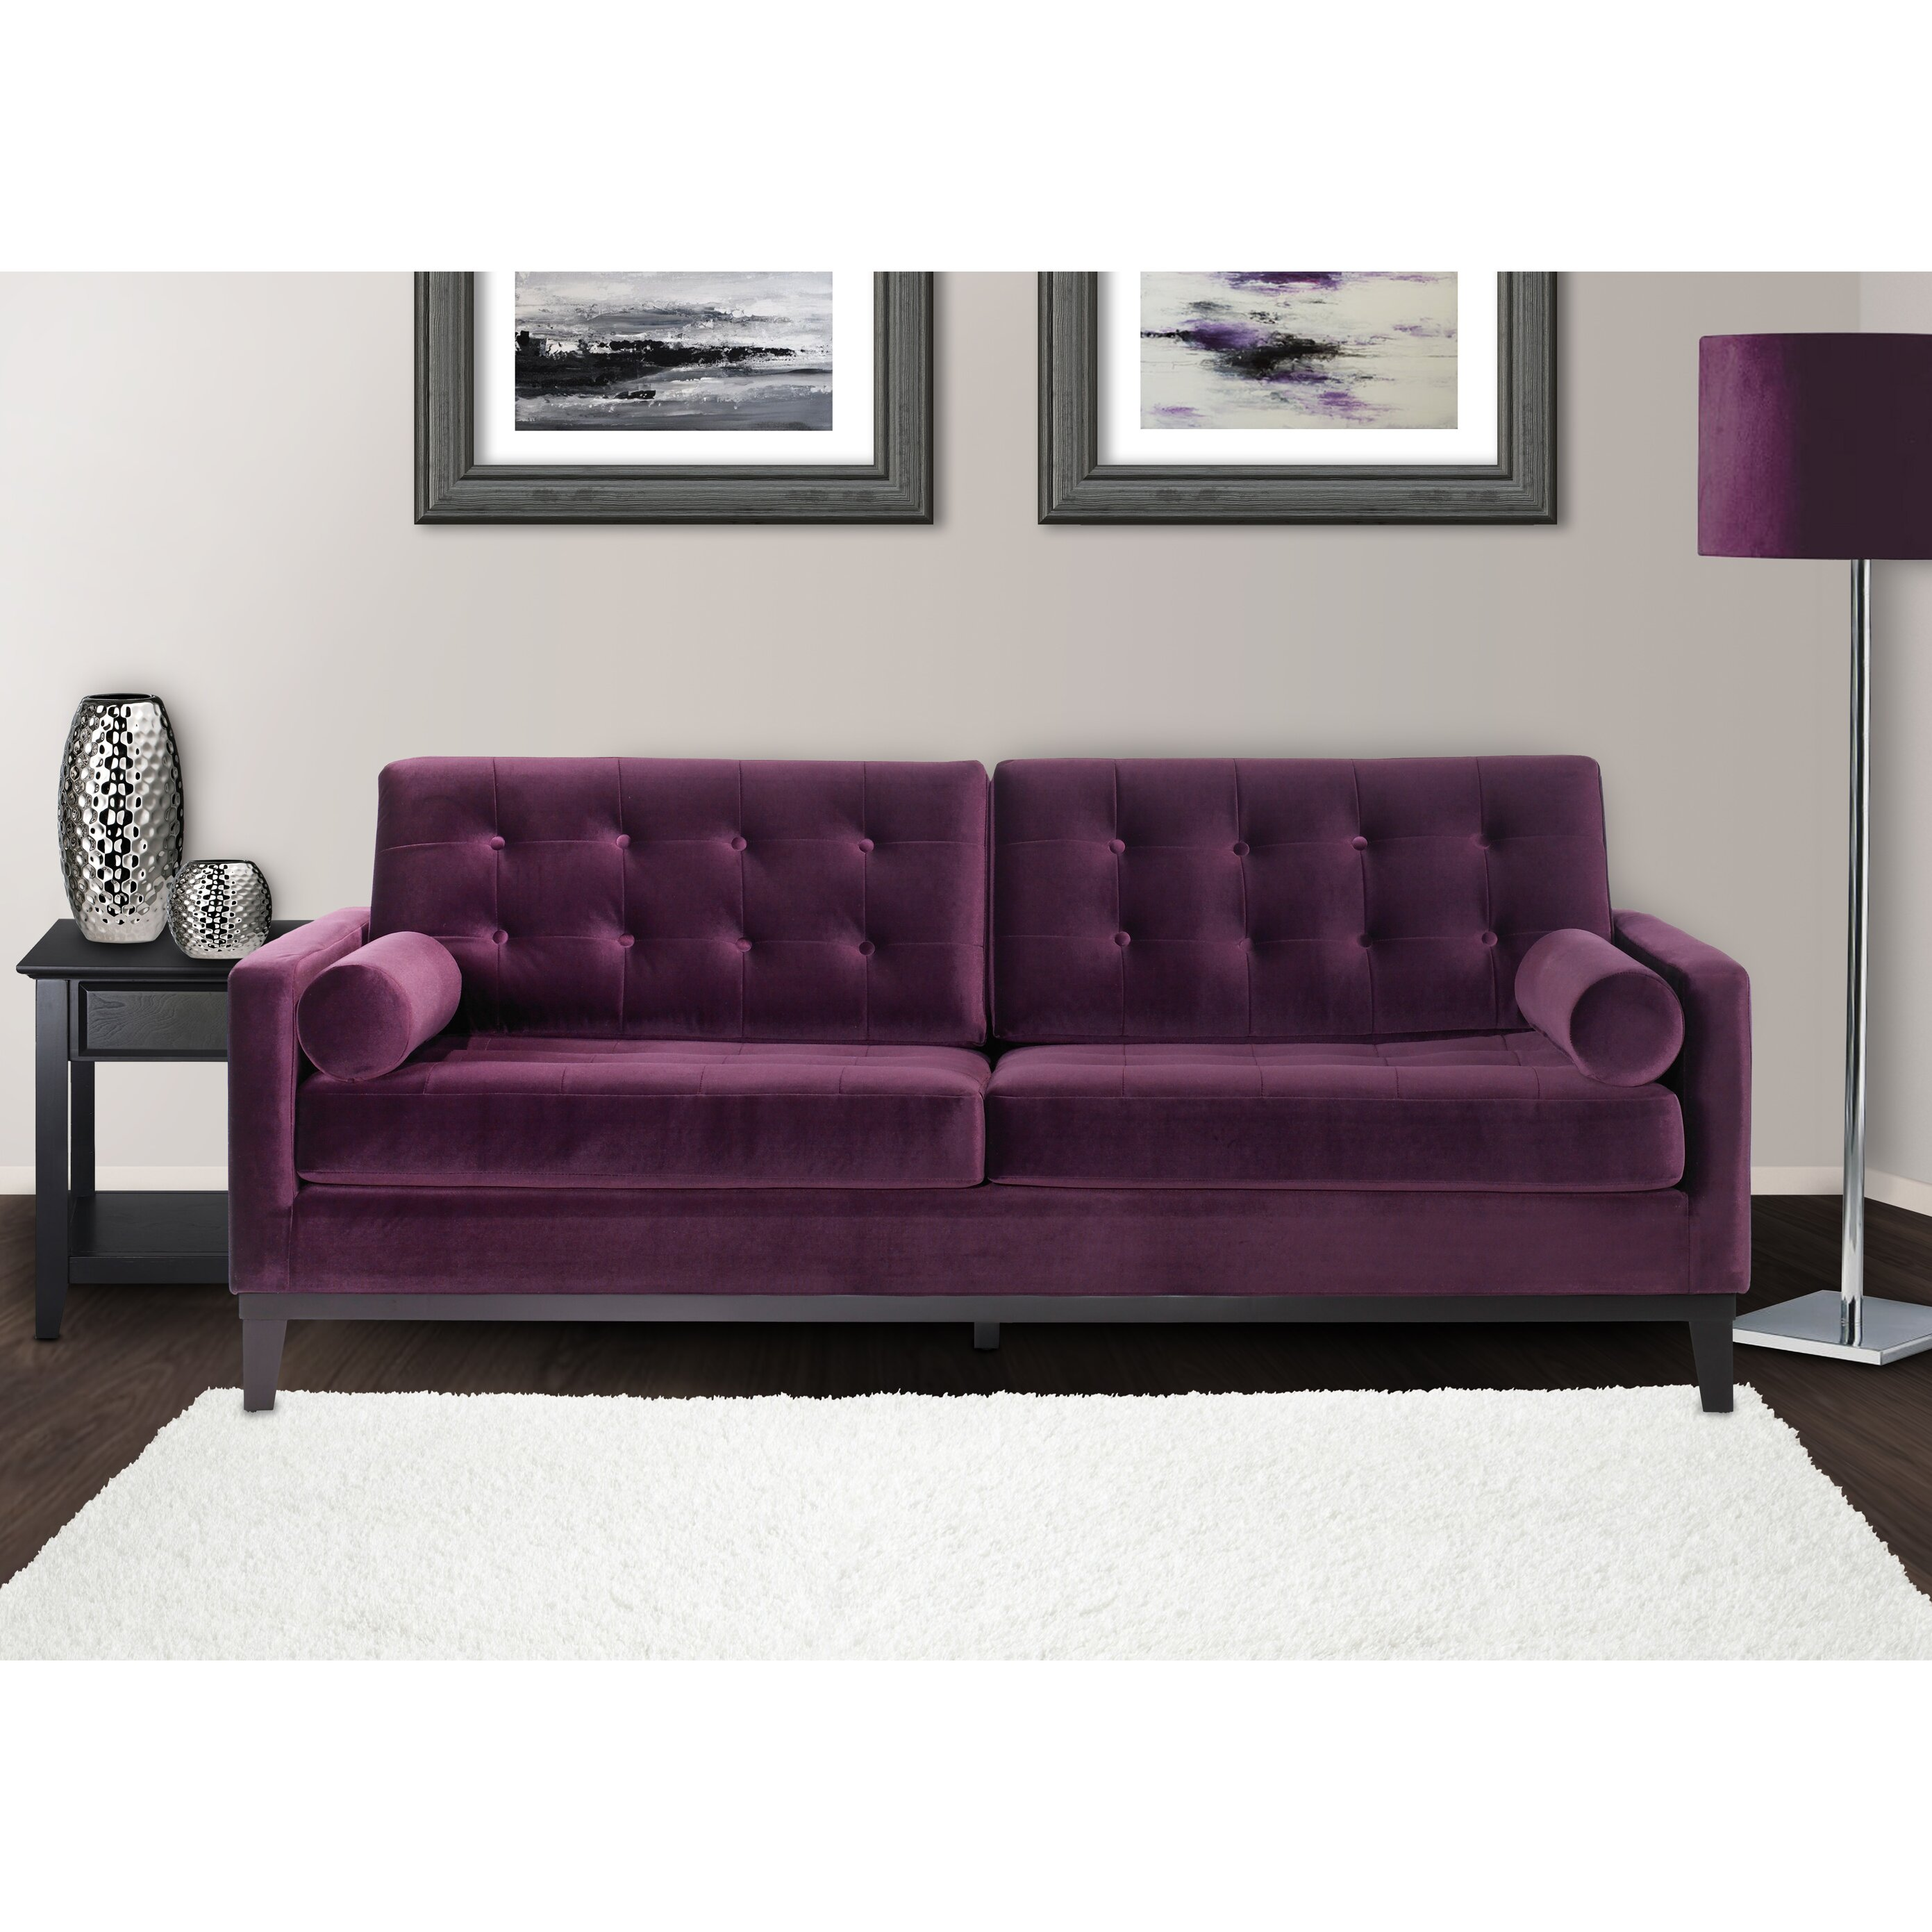 Armen Living Centennial Living Room Collection Reviews Wayfair